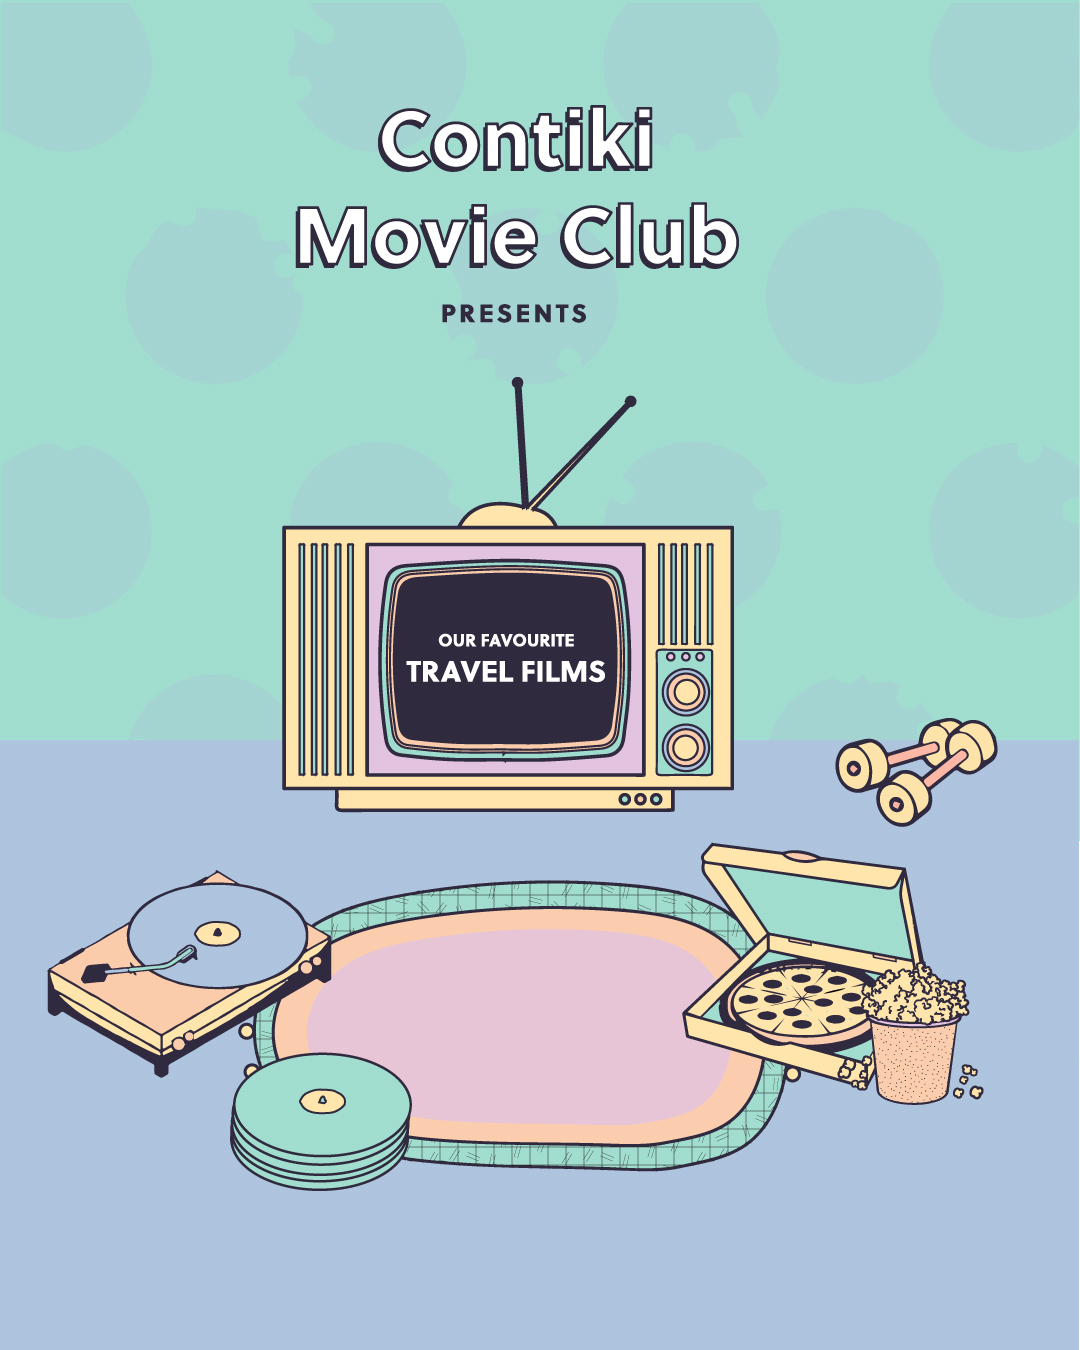 Contiki Movie Club